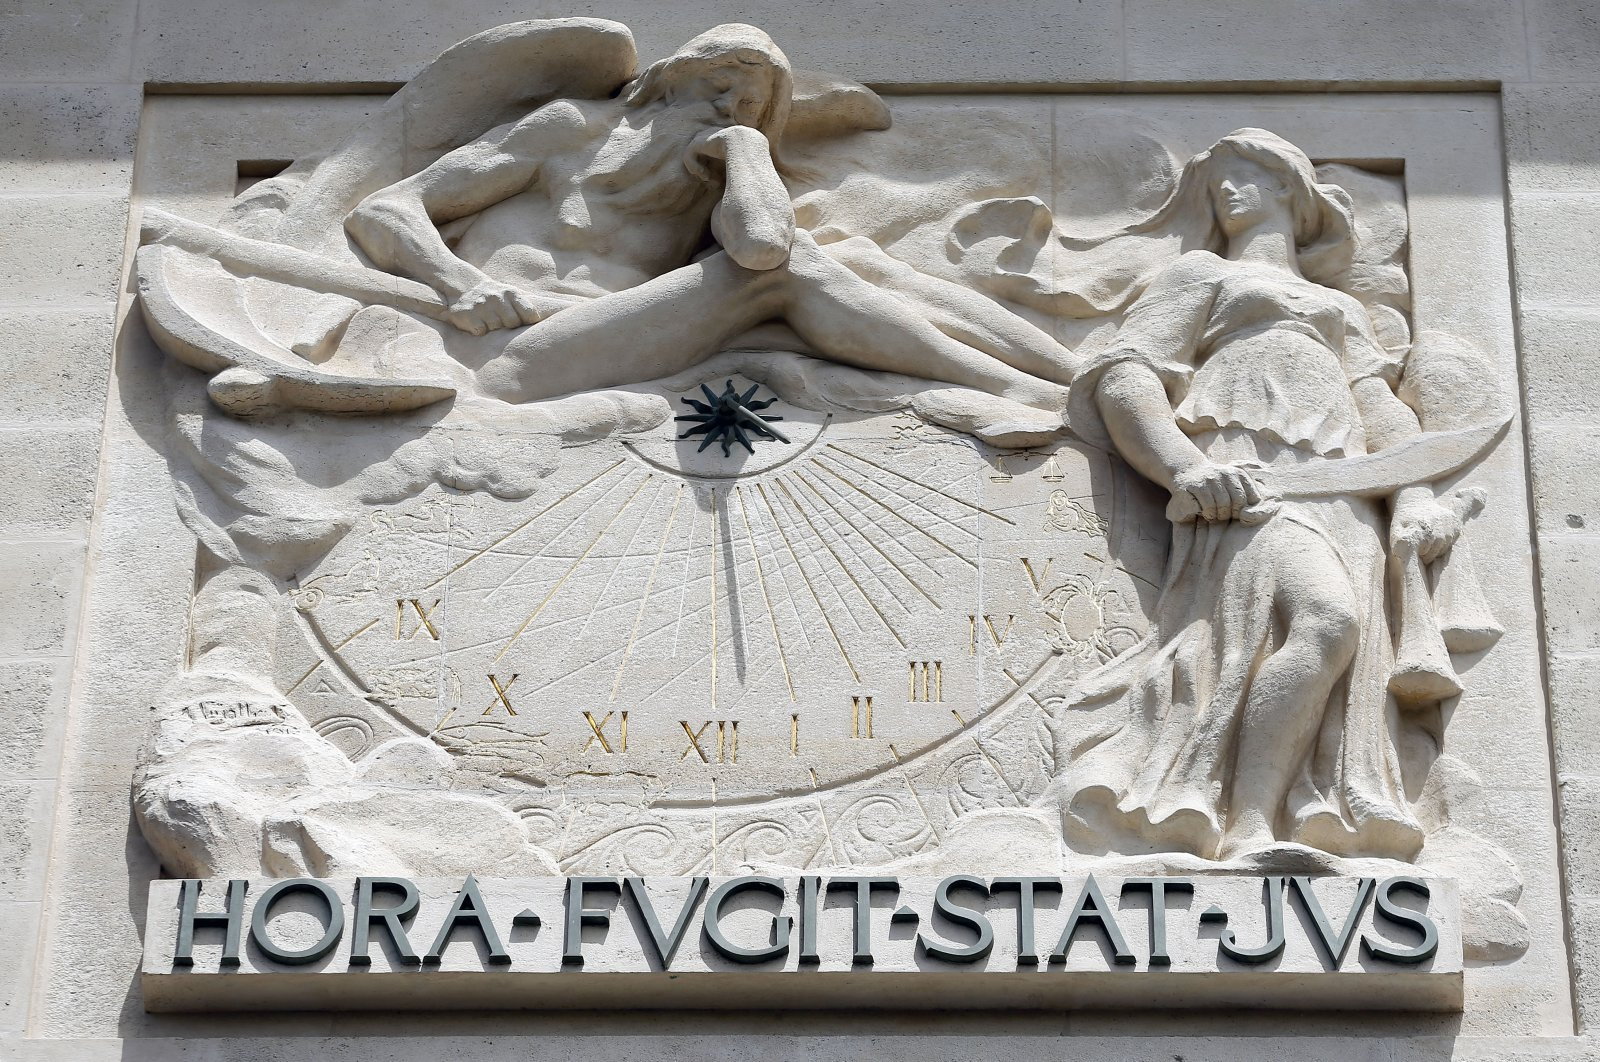 """The iconic exterior sculpture at the Palais de Justice – a French palace that houses the Court of Appeal of Paris and the French Court of Cassation – declares its motto: """"HORA FUGIT STAT JUS,"""" meaning """"the hour passes, justice remains"""" in Paris, June 13, 2017. (Photo by Getty Images)"""